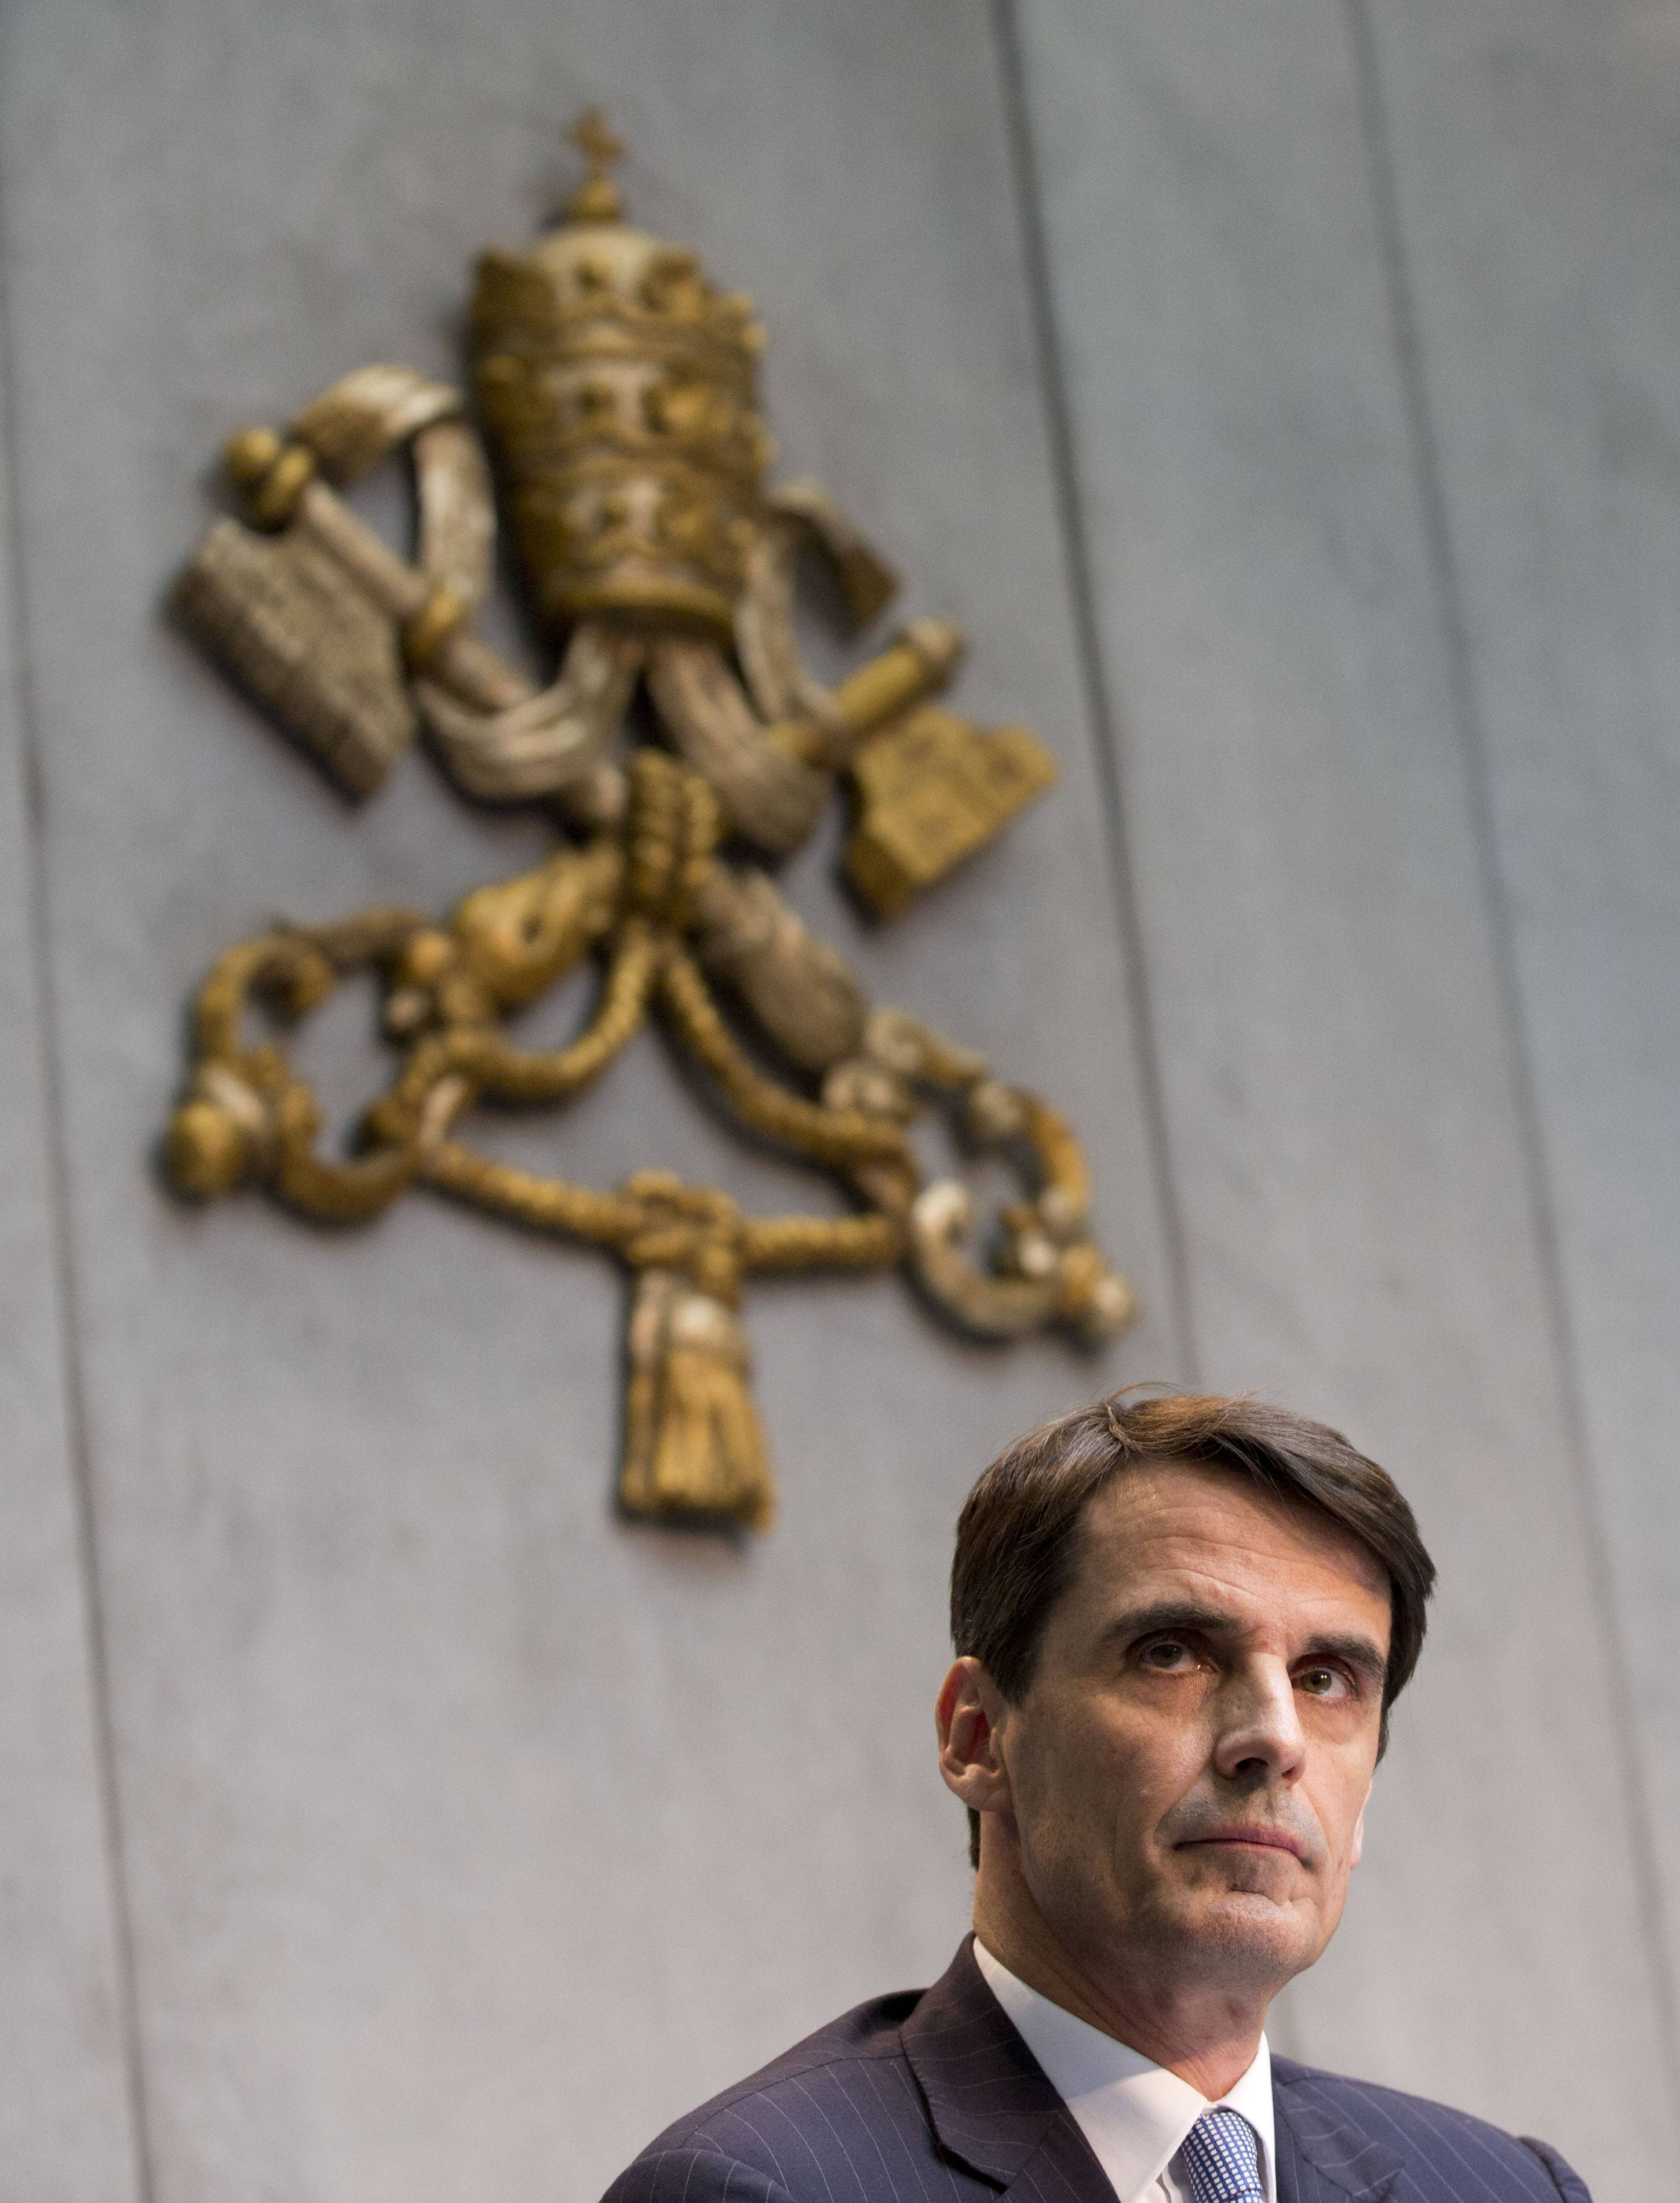 The Vatican has chosen French financier Jean-Baptiste de Franssu as the new president of its bank, which is overhauling operations after a series of financial scandals.